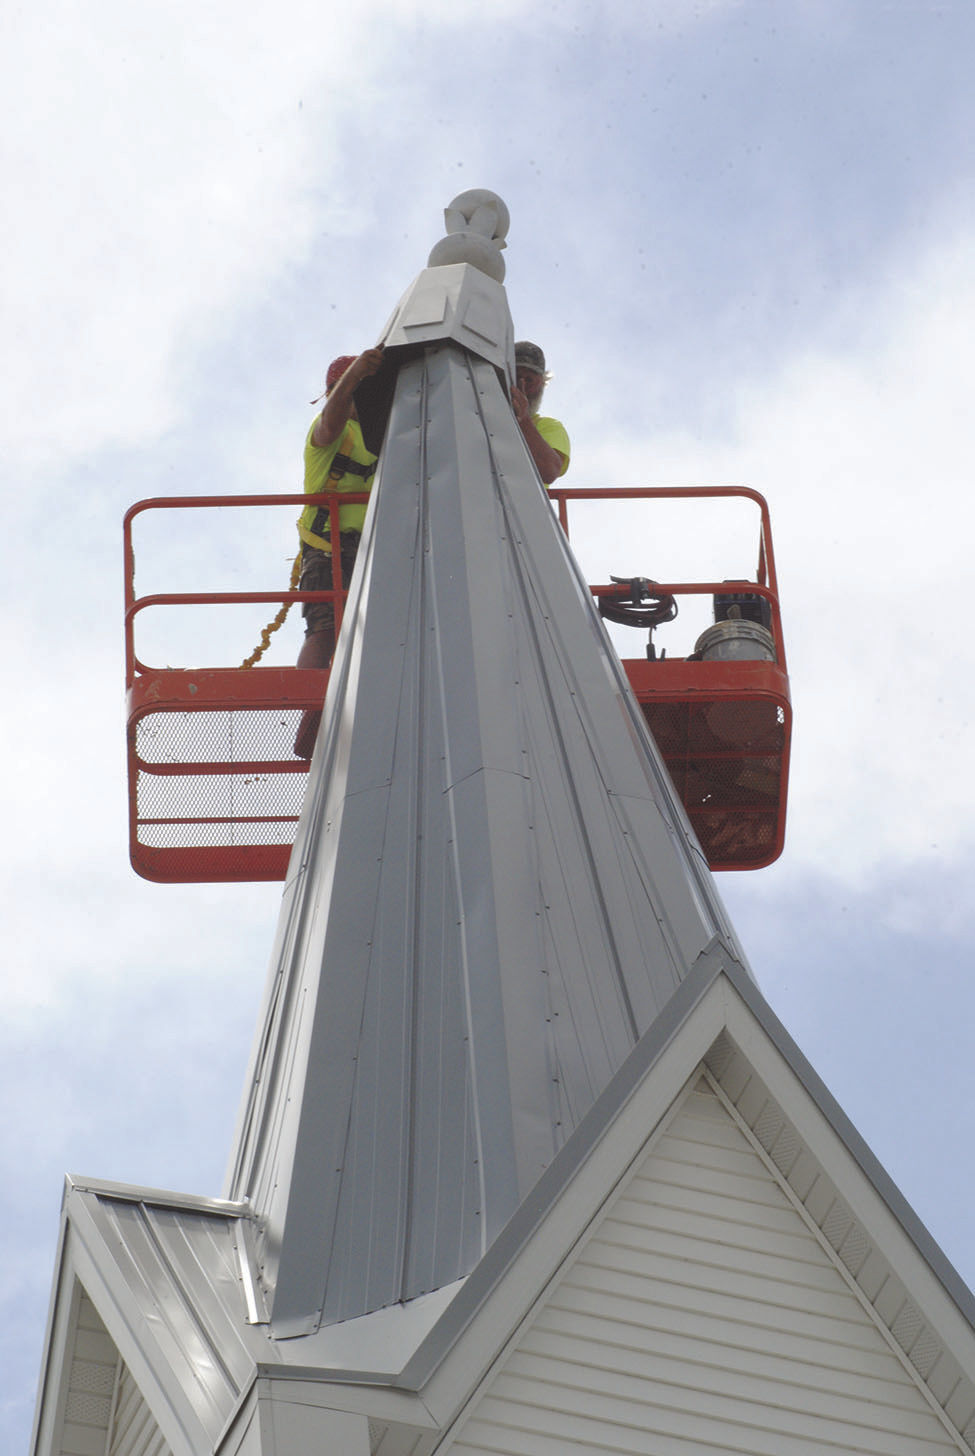 The little white church by the road receives final touch